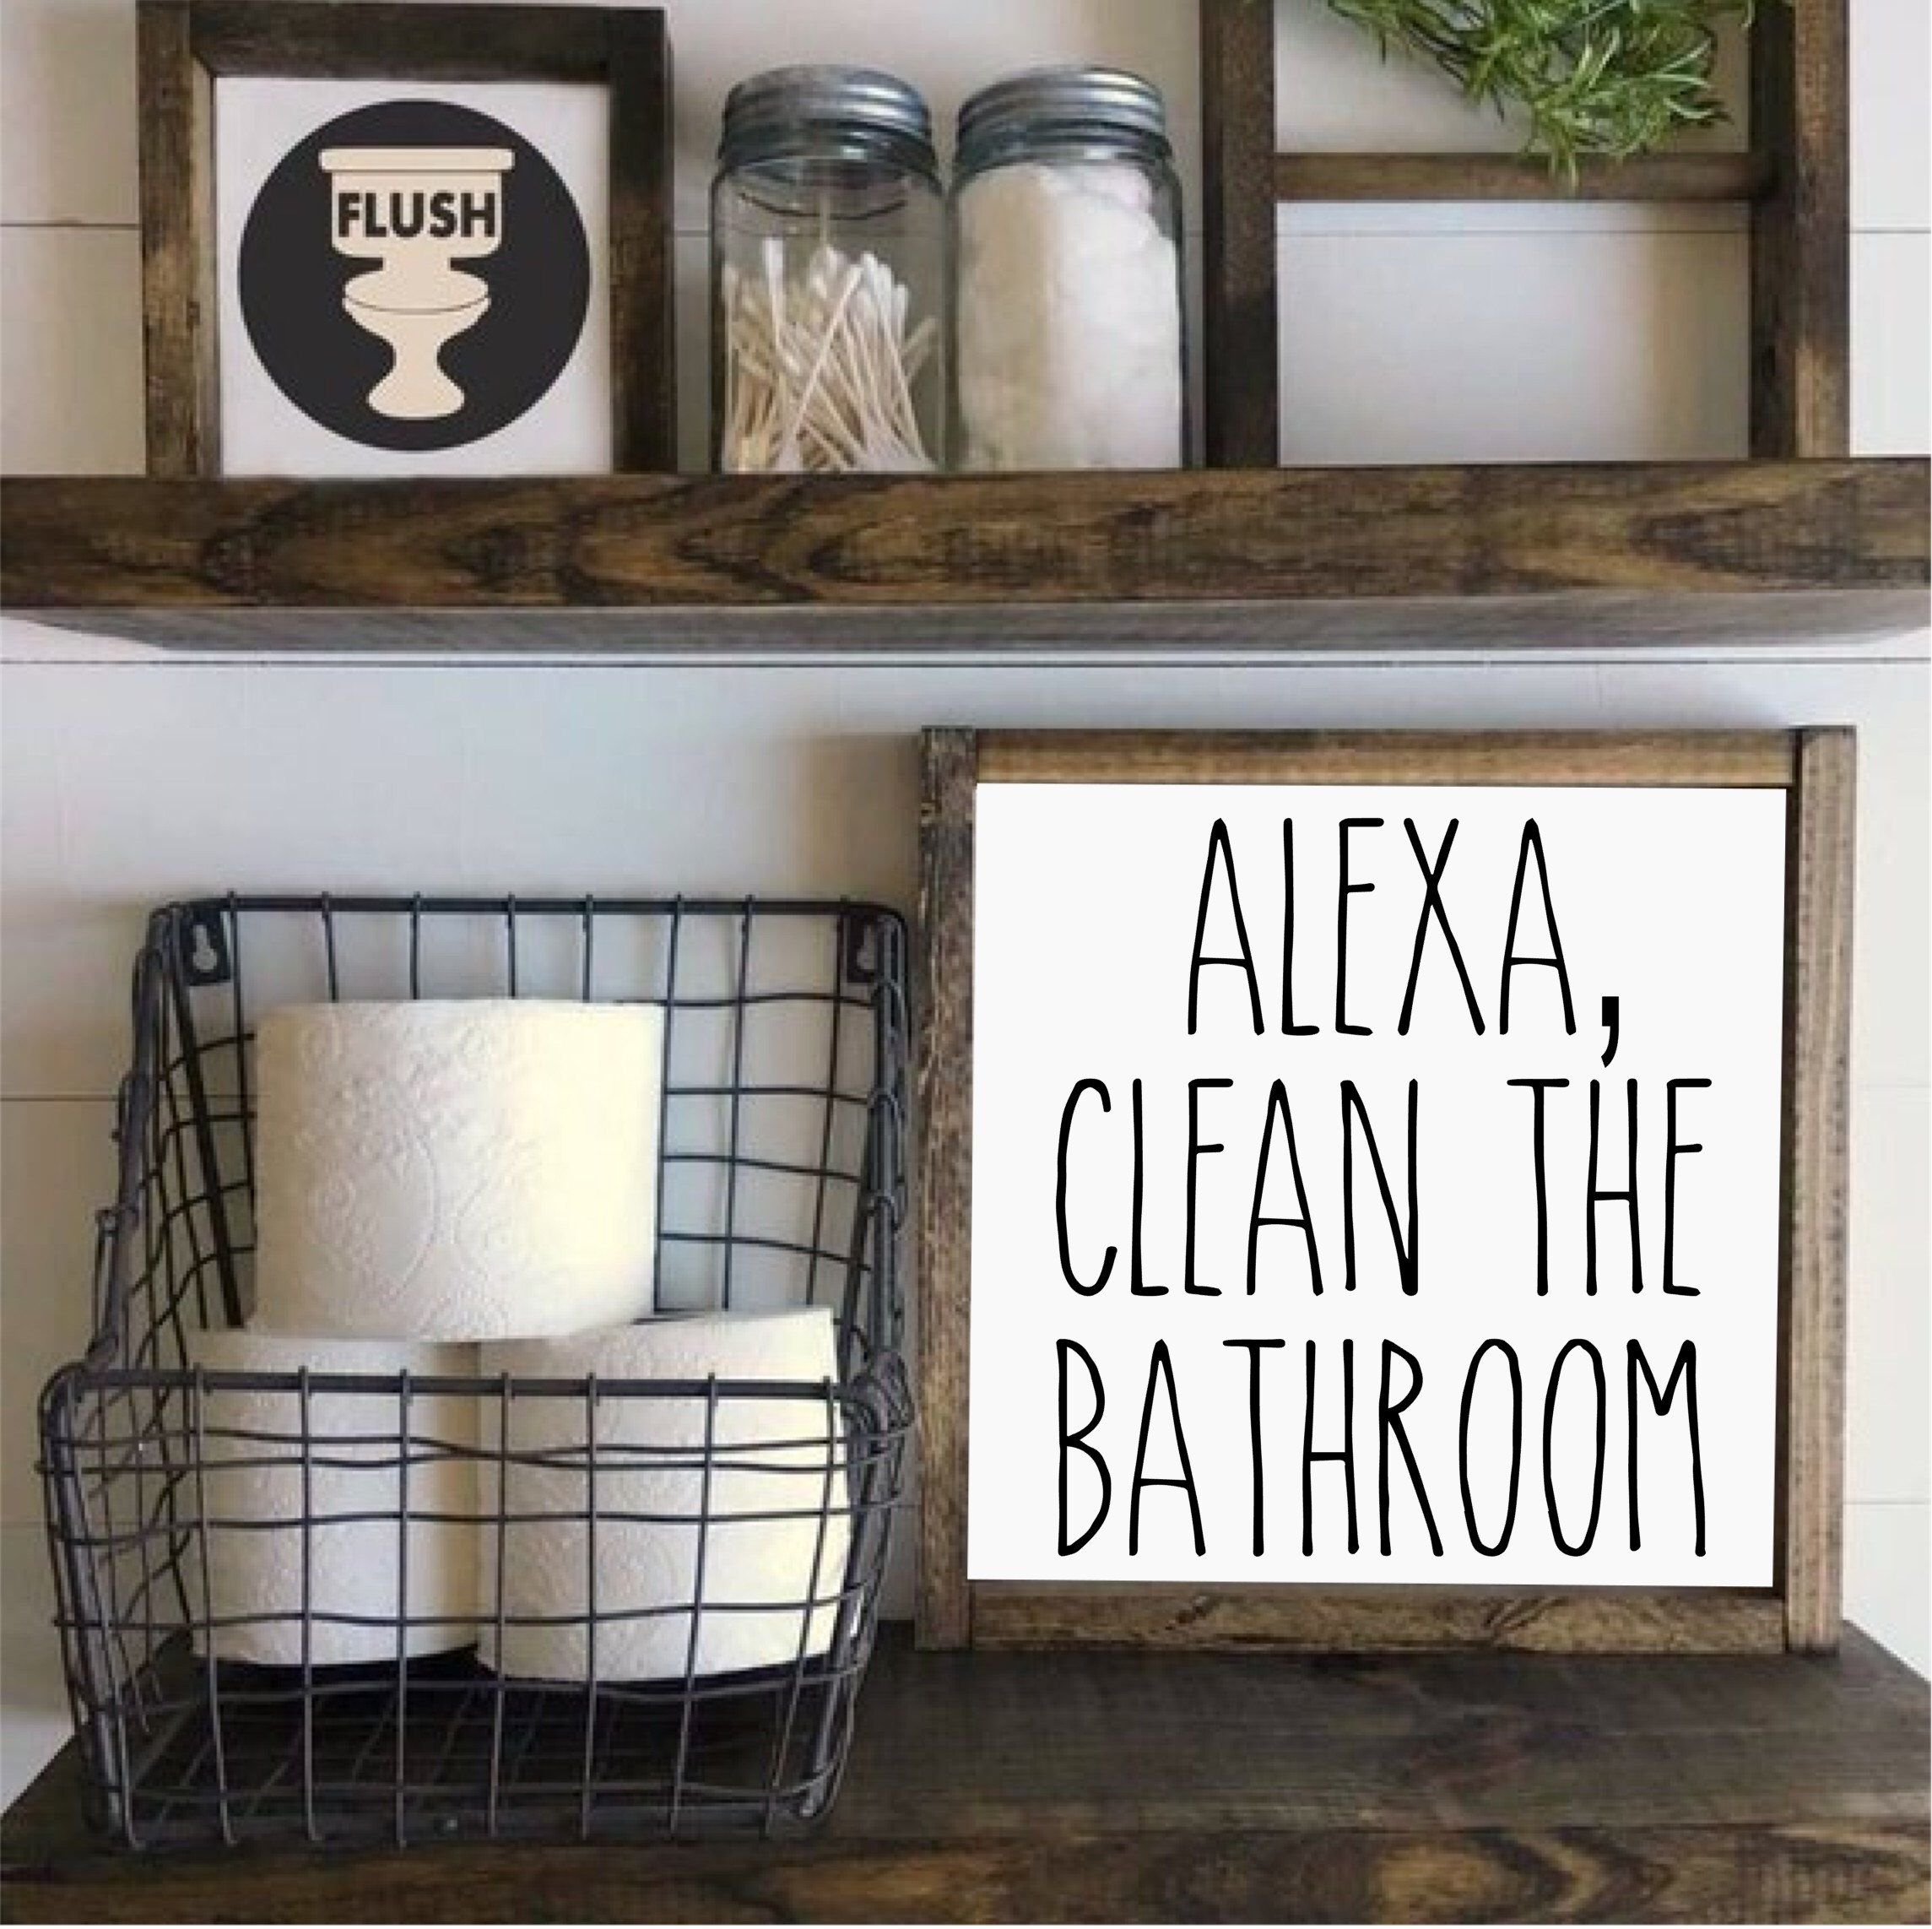 Photo of Alexa, Clean the Bathroom, Farmhouse Style Wood Sign, Framed Wood Sign, Rustic Wood Sign, Farmhouse Home Decor, Rustic Home Decor,Gifts